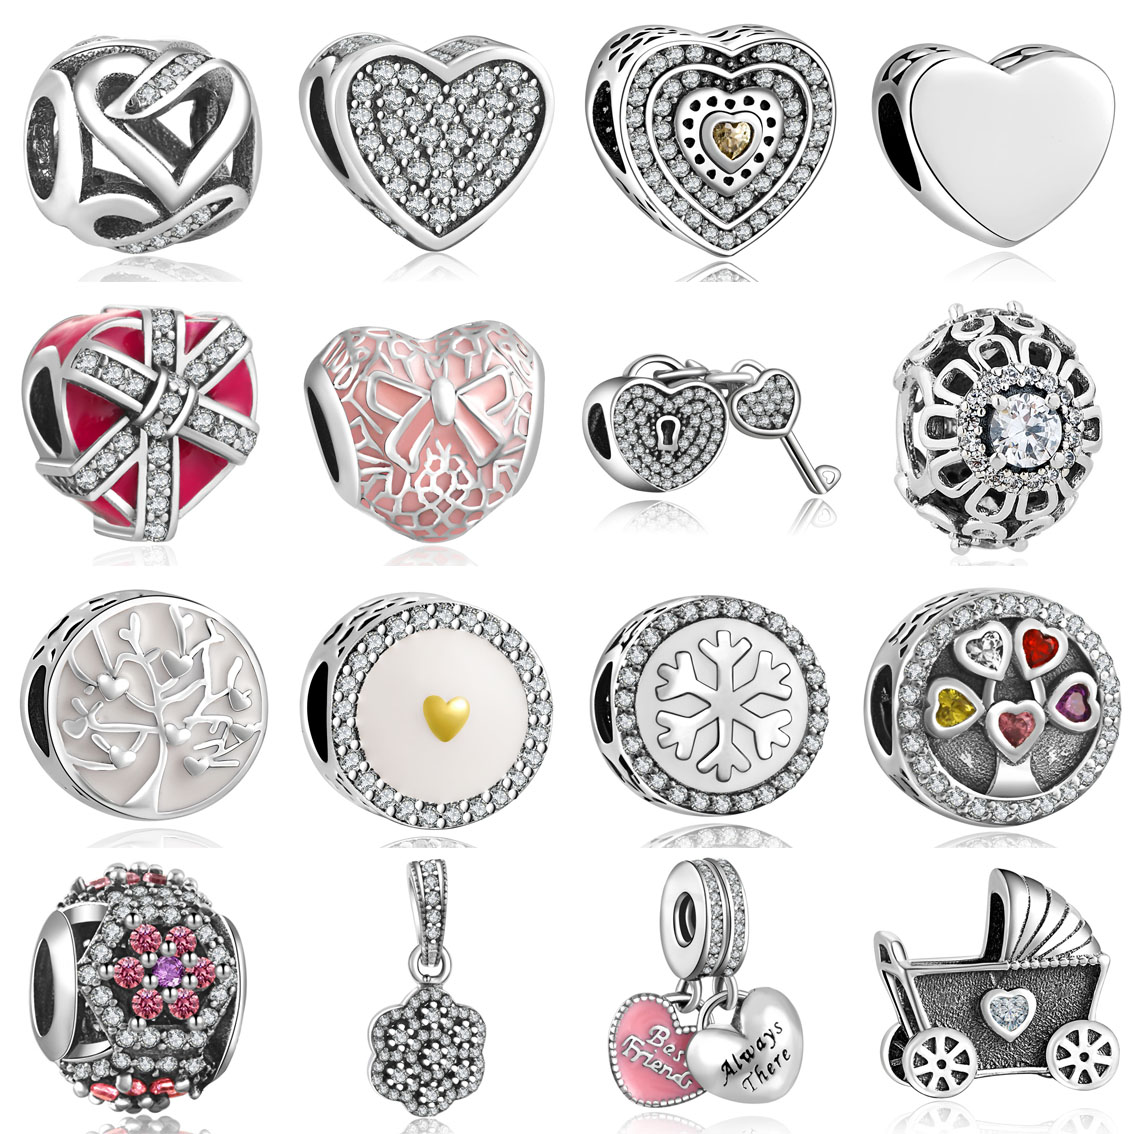 New TOP Quality 925 Silver Charm Beads with Full Crystal Fit Original Pandora Bracelet Pendants For Women Jewelry